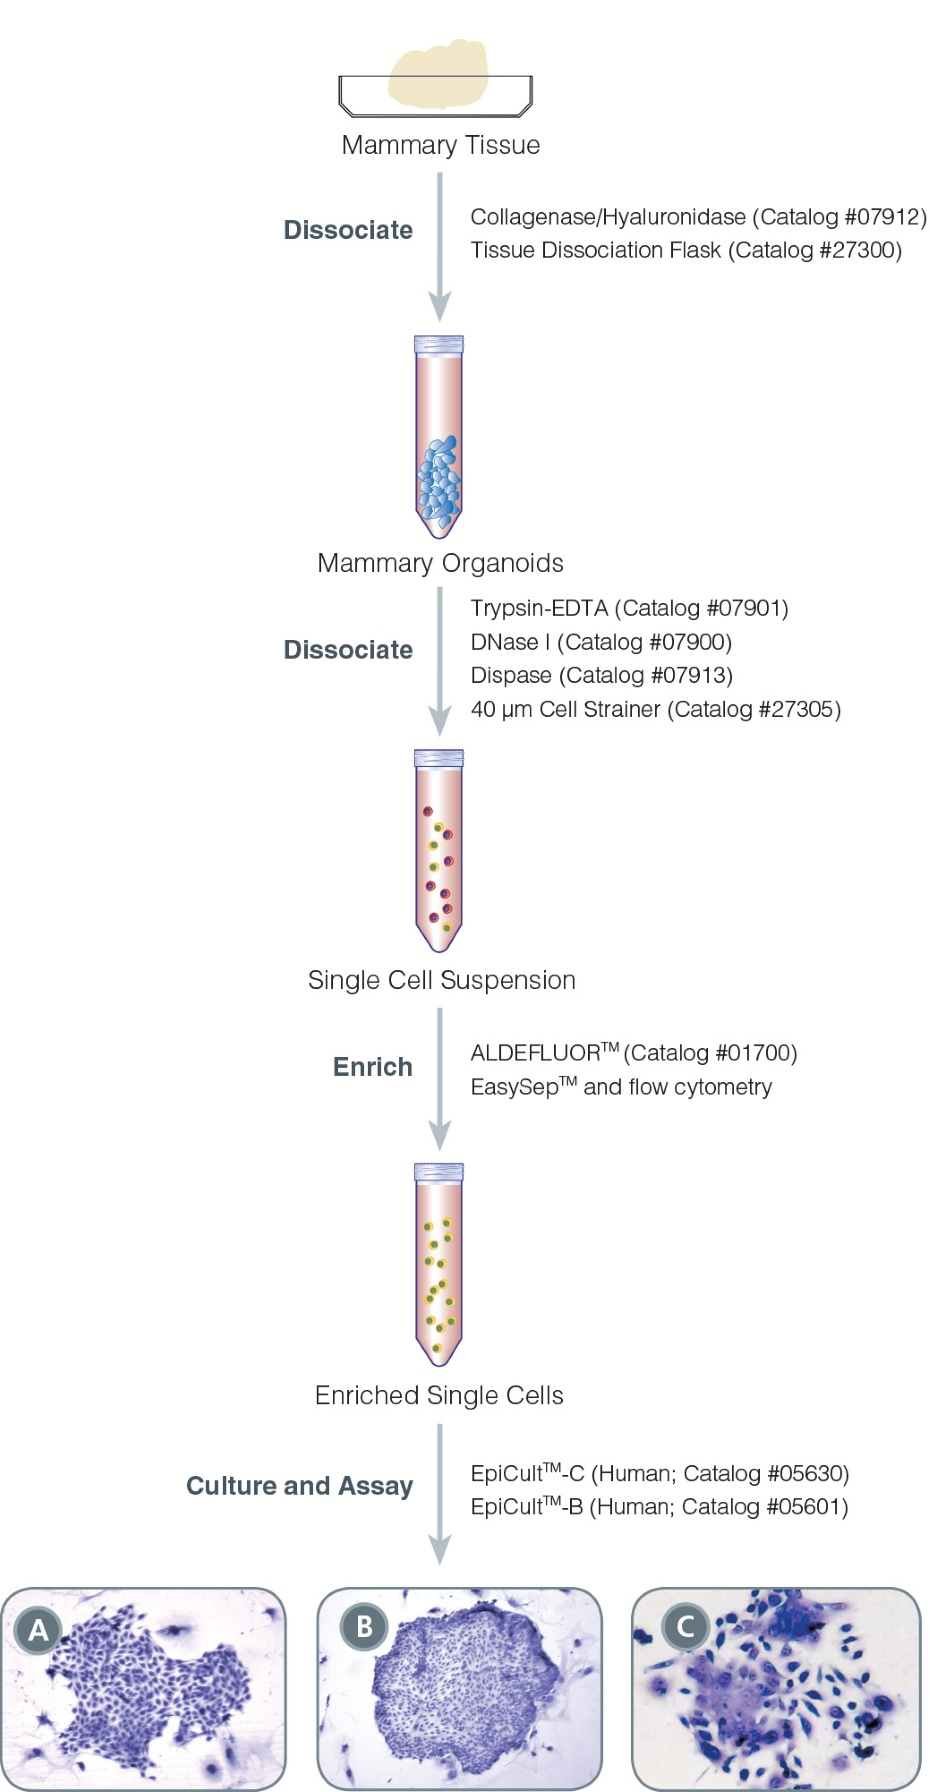 Protocol for Isolation and Identification of Human Mammary Progenitor Epithelial Cells